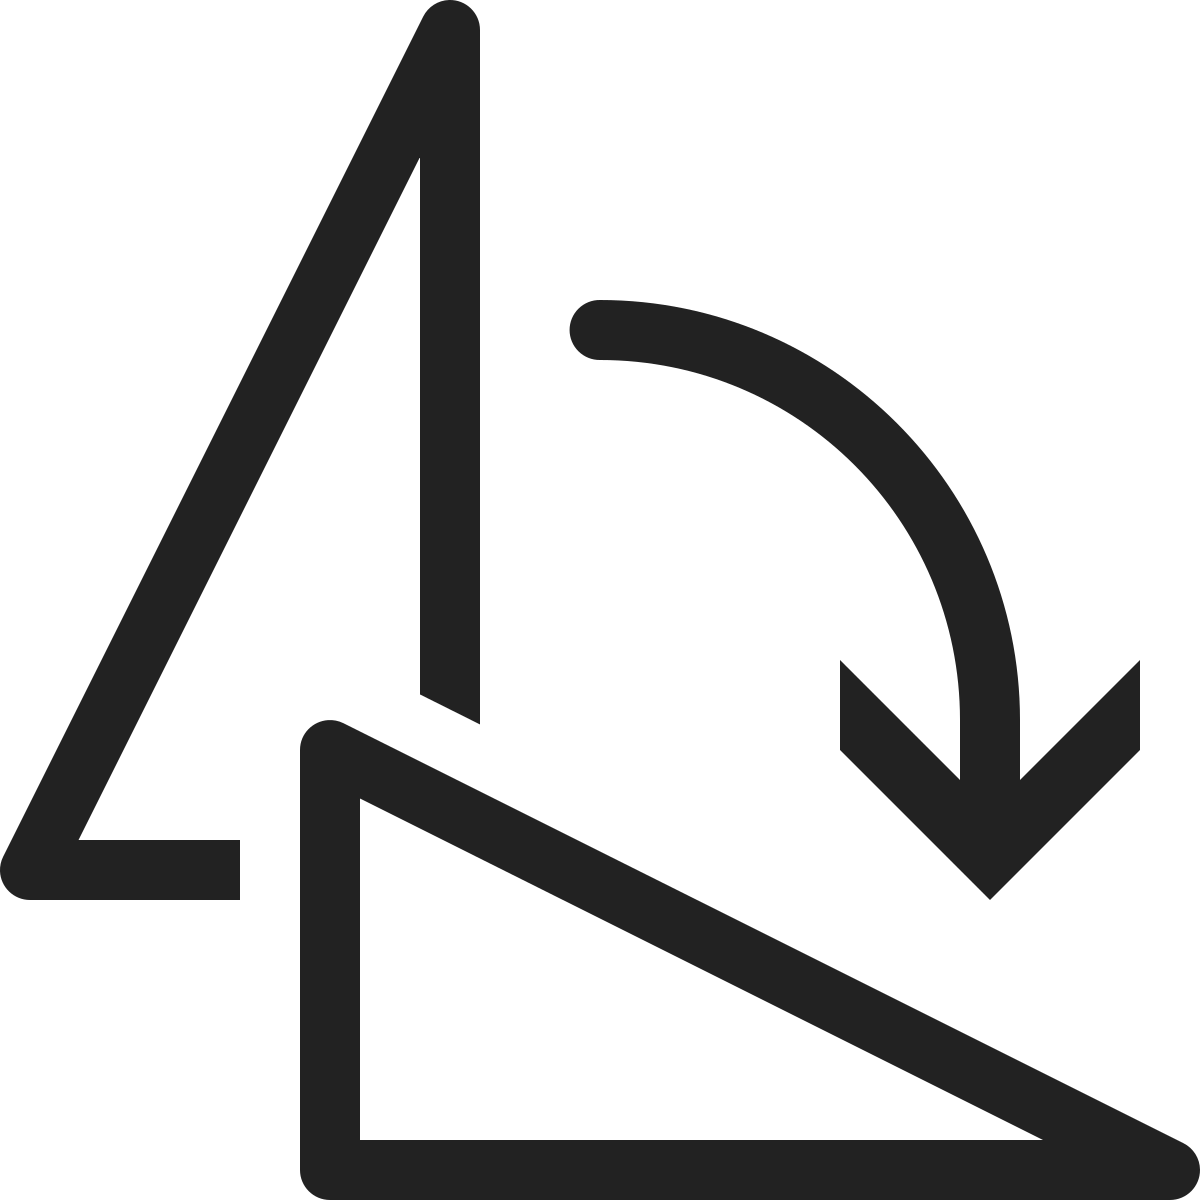 direction  move  interaction  position  rotate  touch gesture  drag icon icon